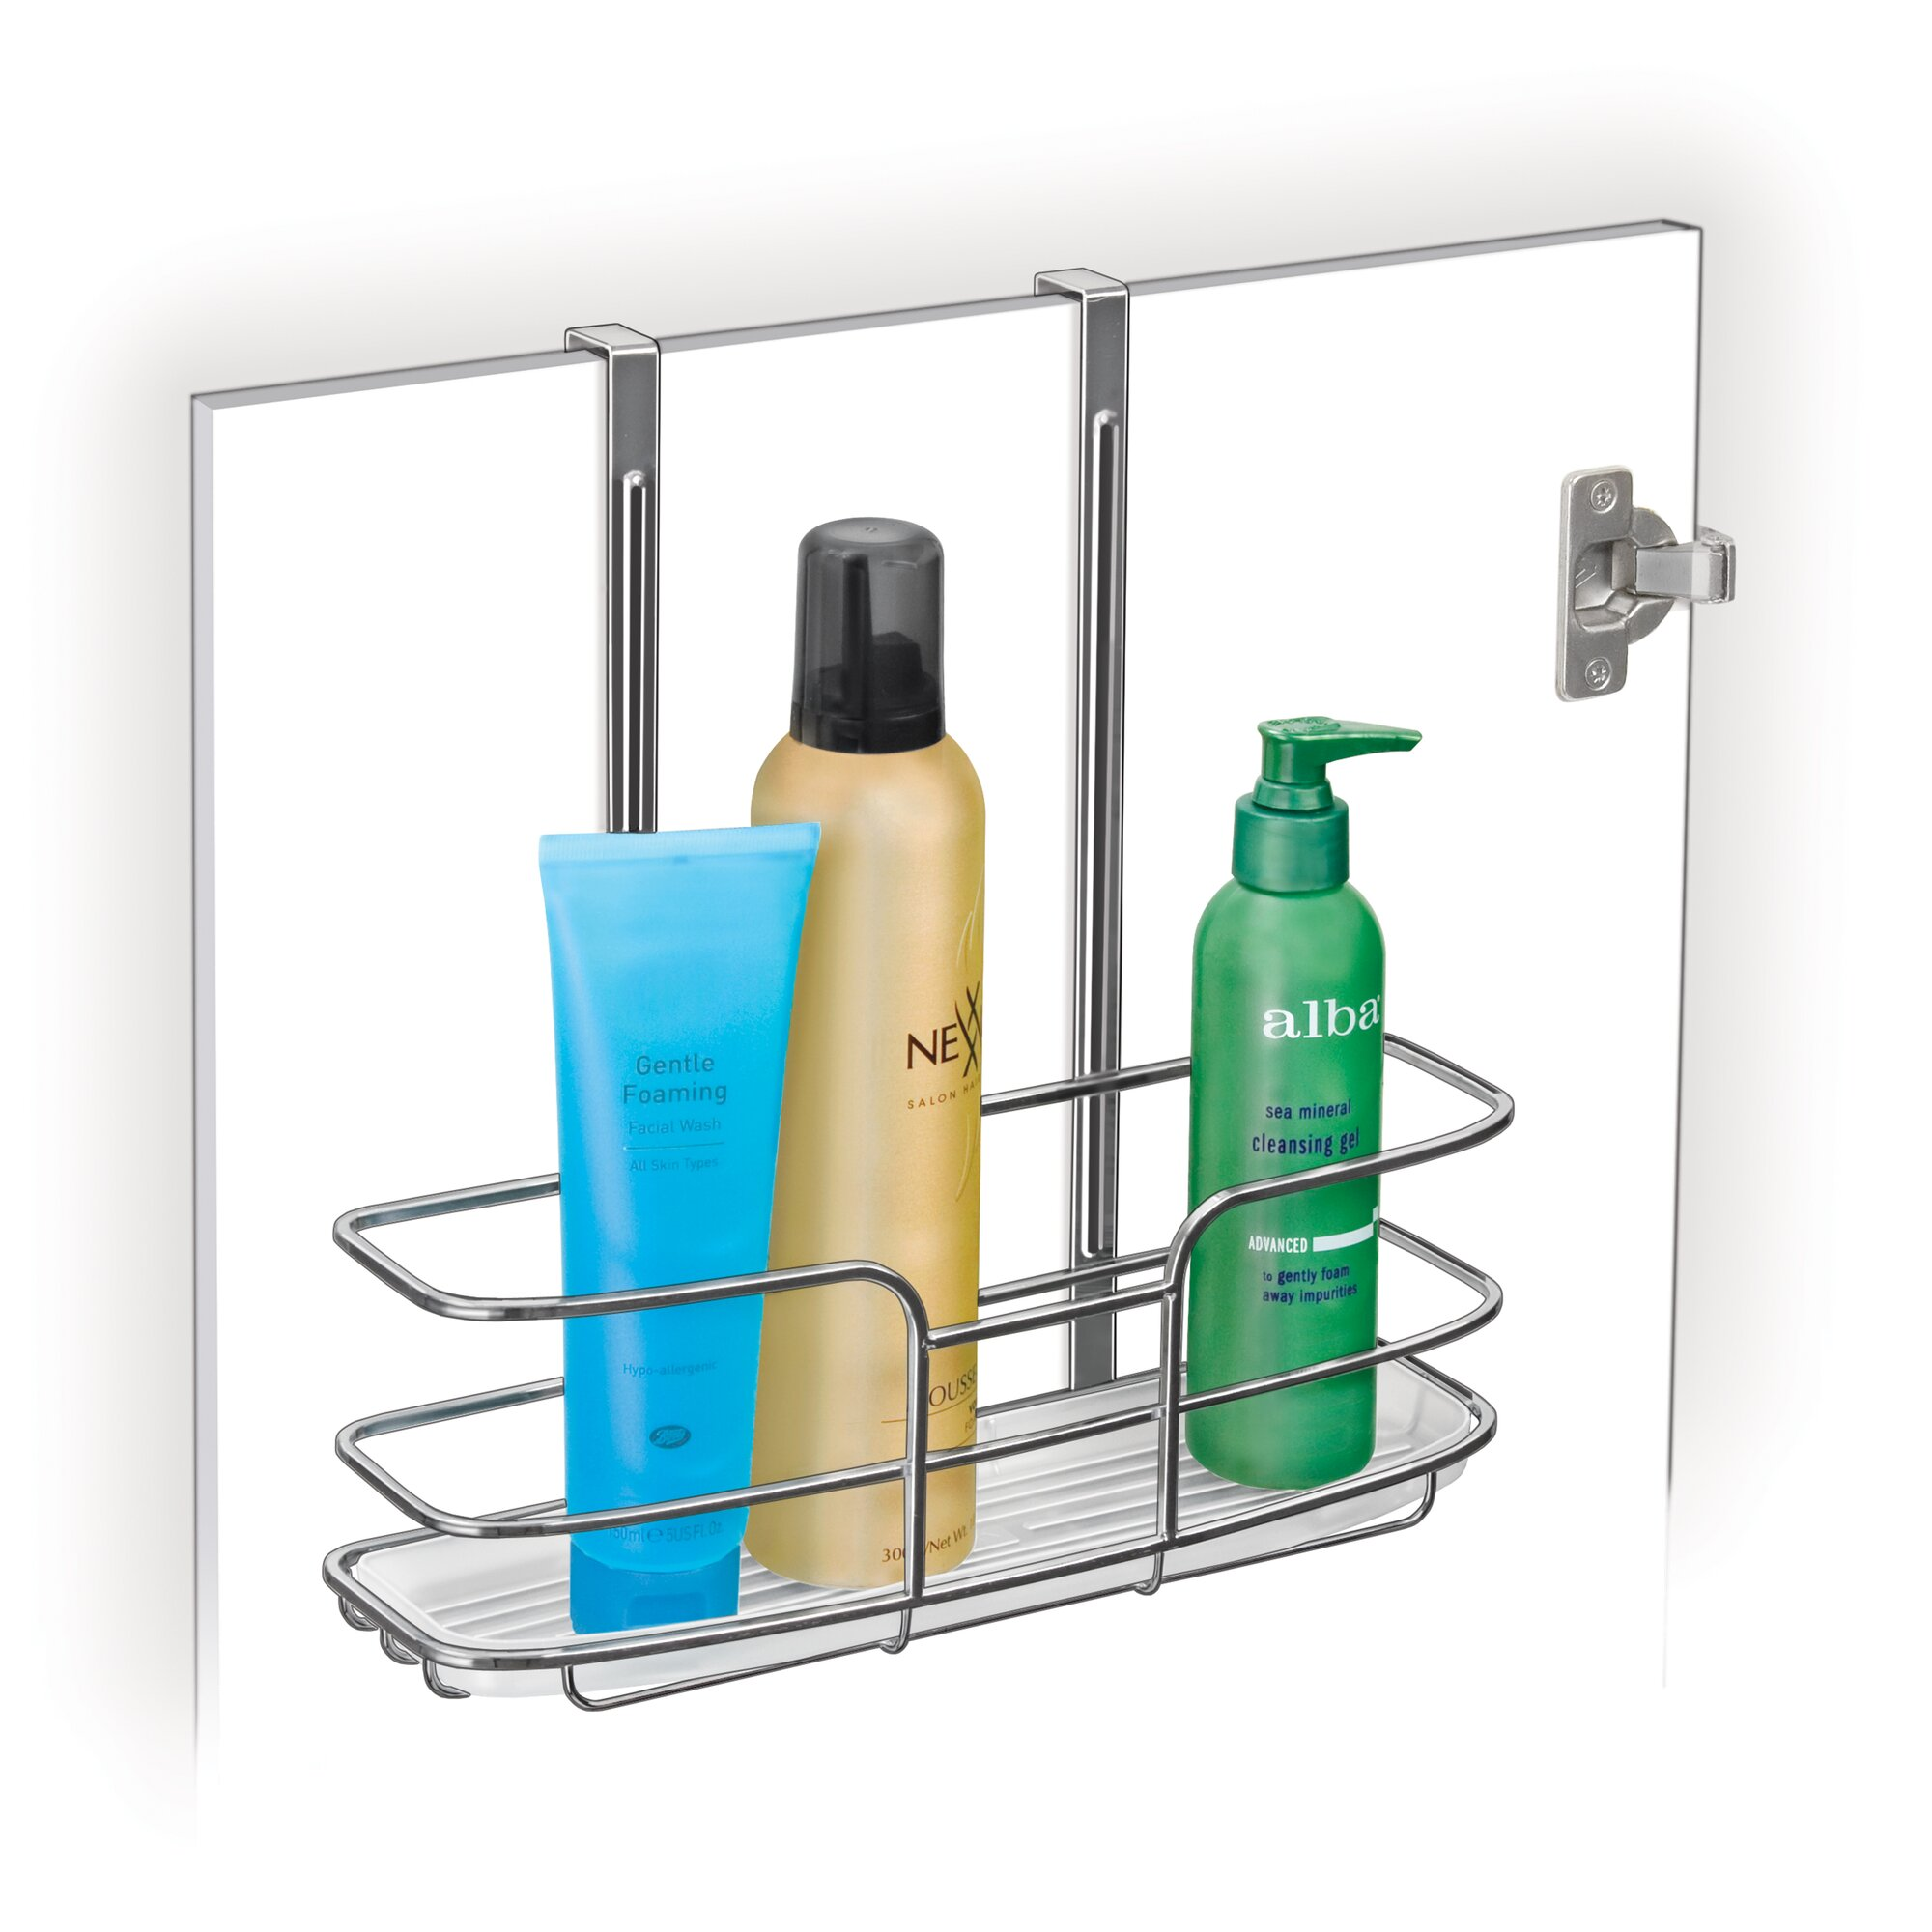 Lynk Tall Over Cabinet Door Organizer Reviews – Over Cabinet Door Storage